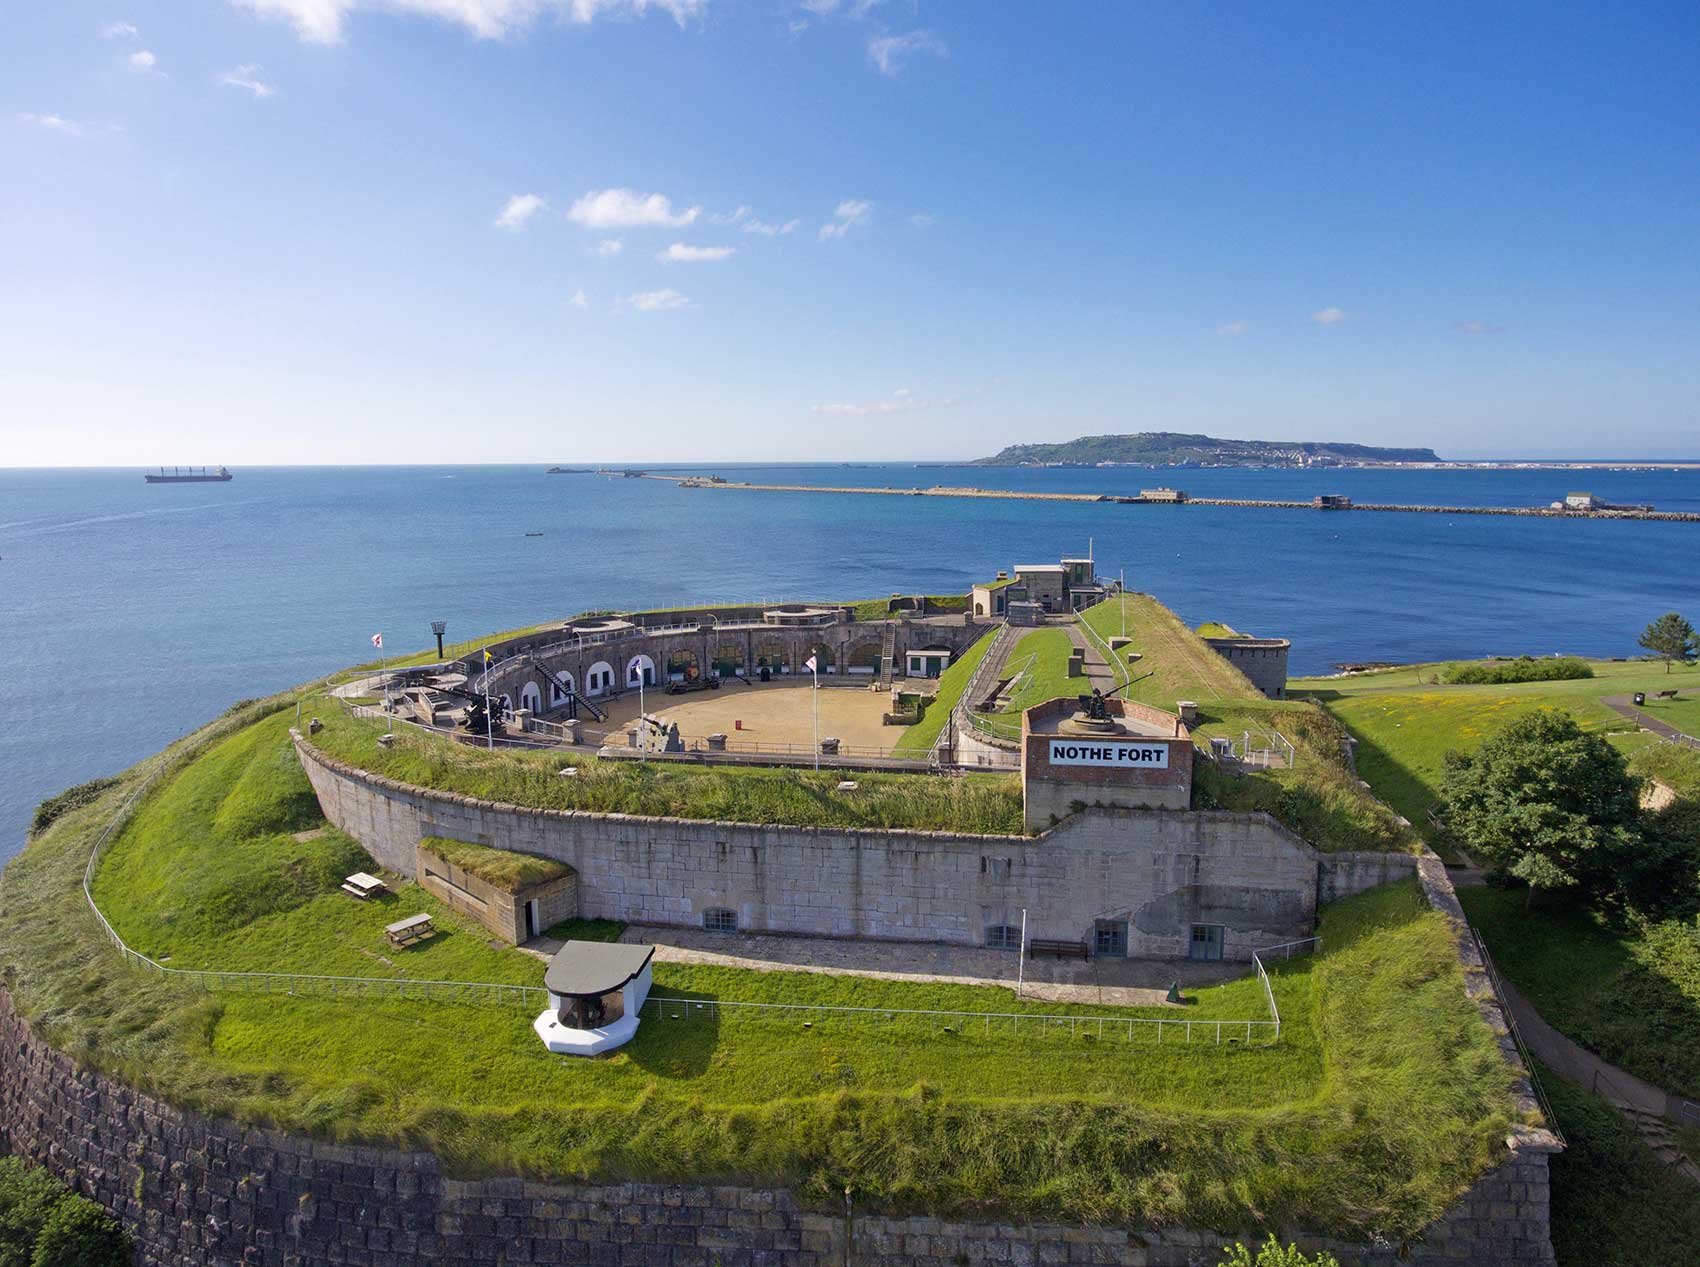 nothe fort heritage